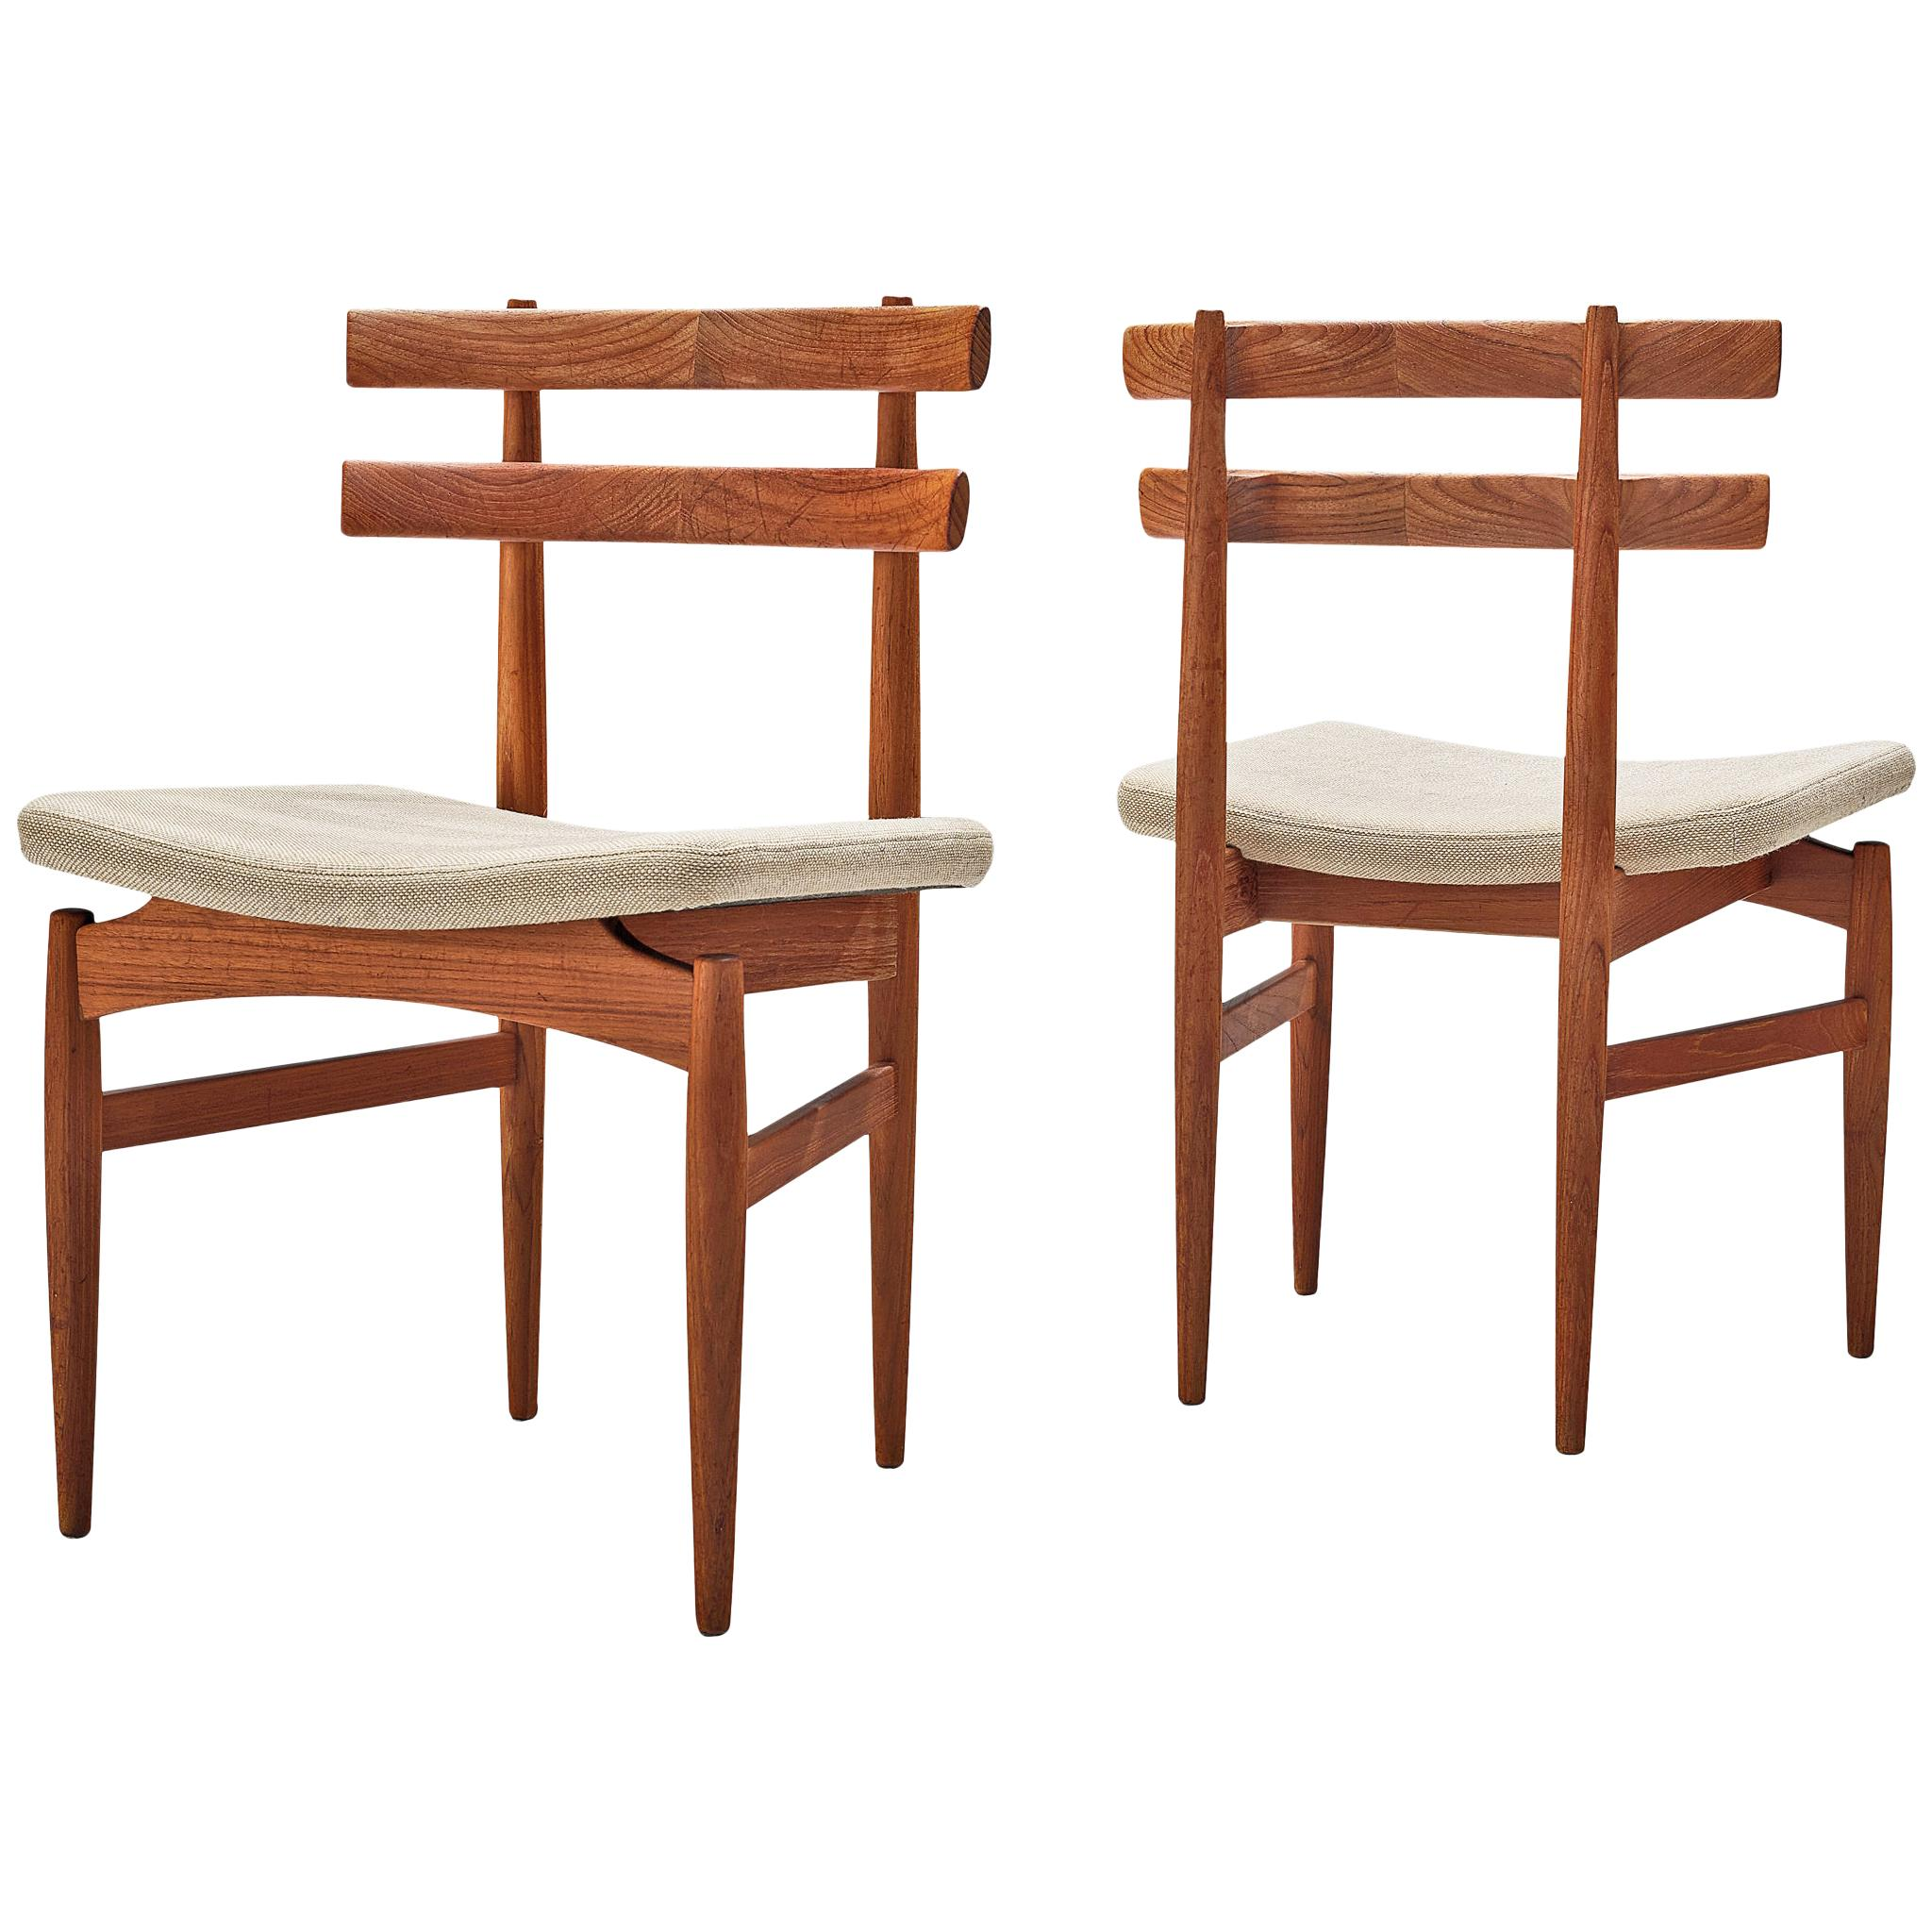 Poul Hundevad Pair of Dining Chairs Model '30' in Teak